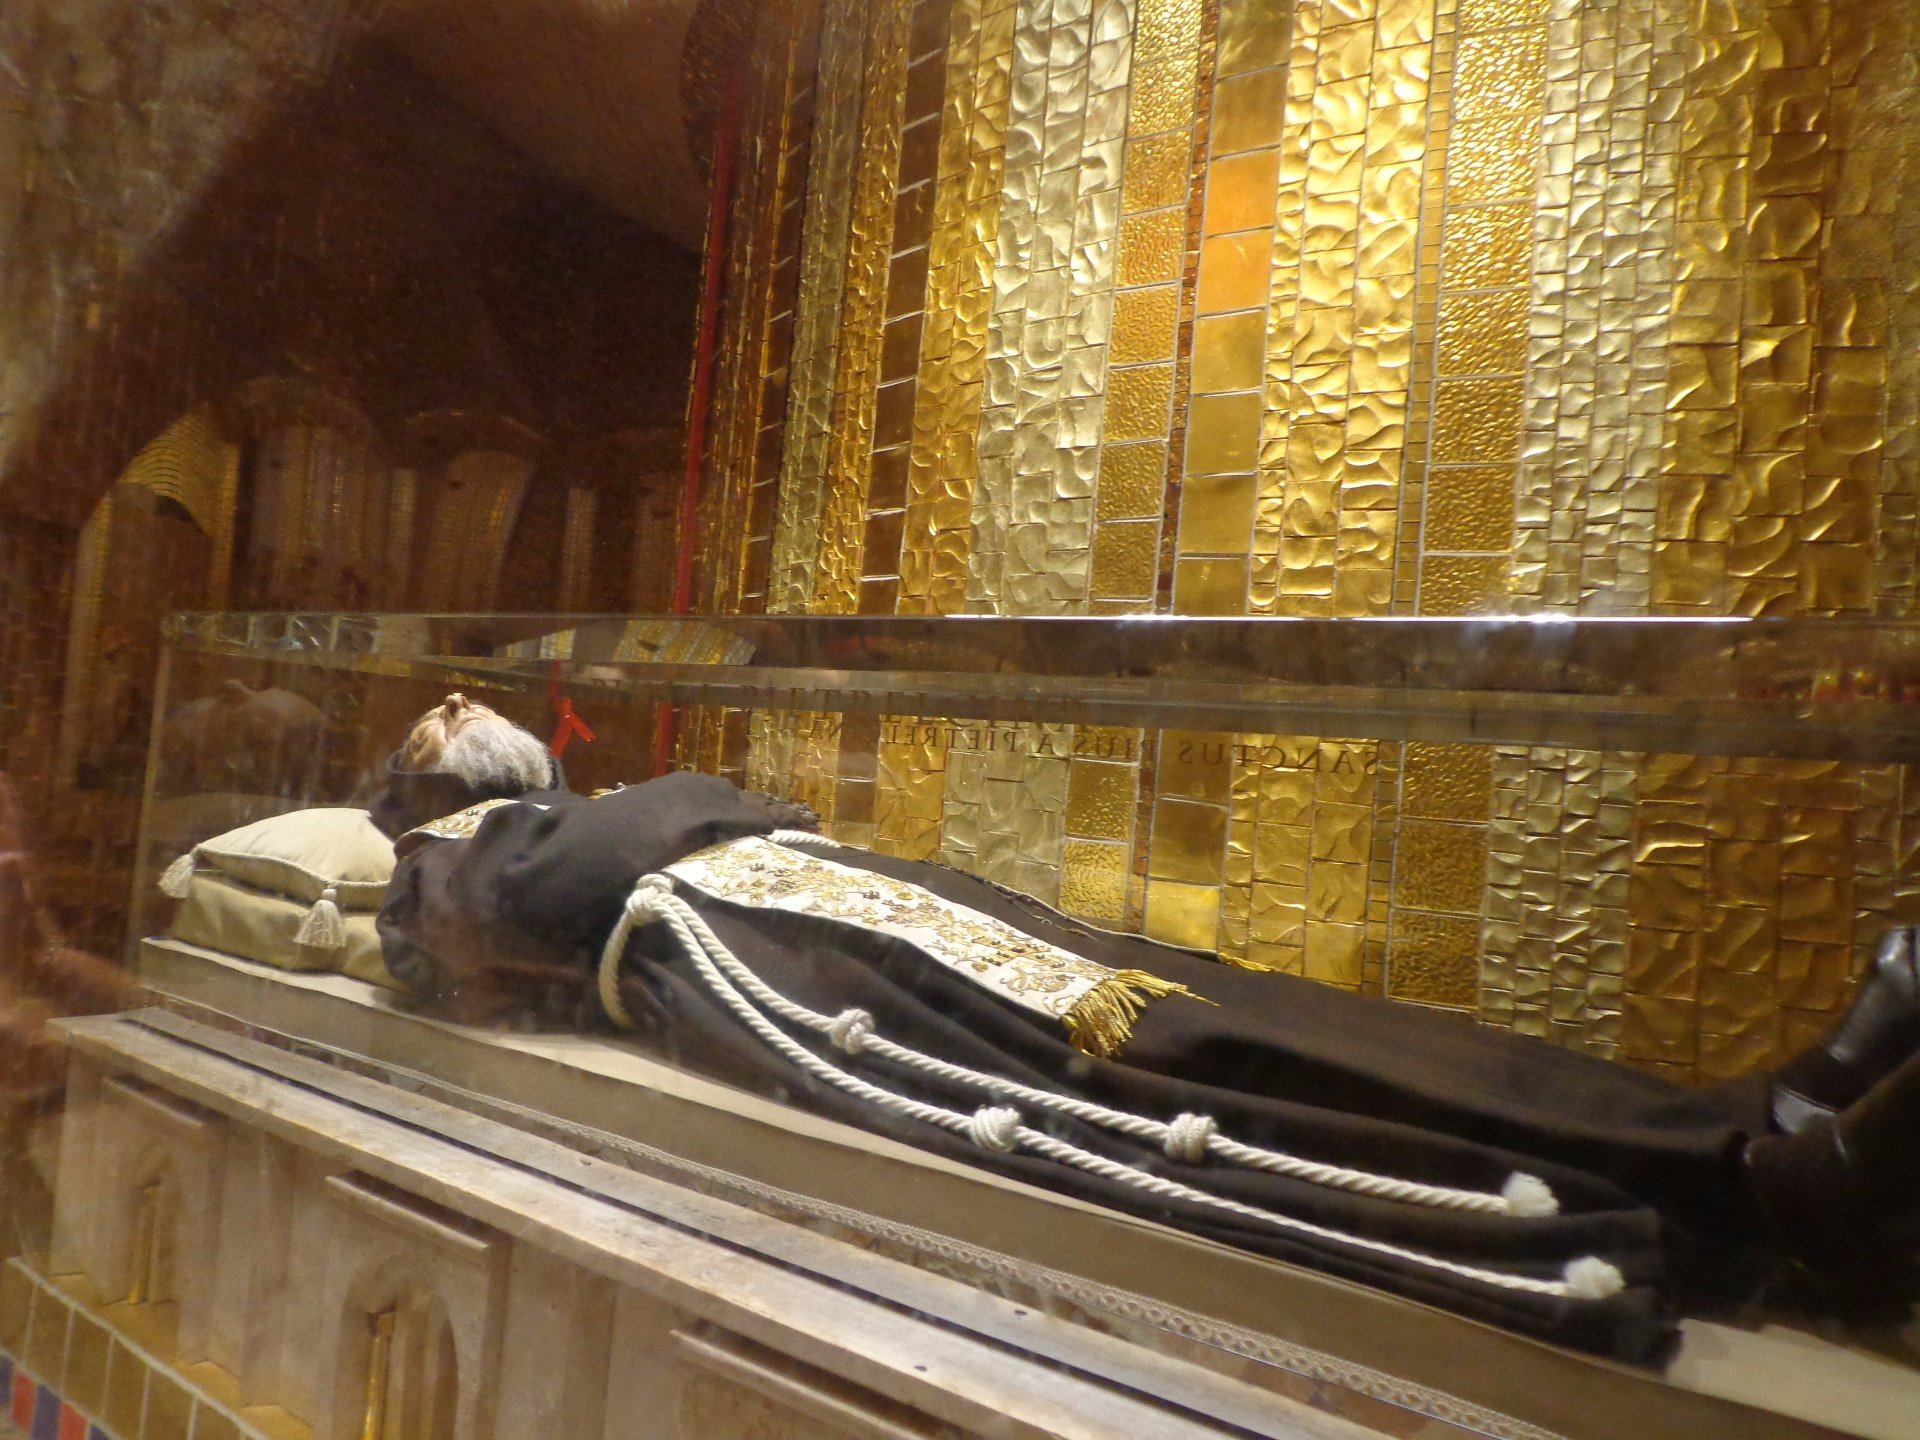 Saint Padre Pie incorrupt body at San Giovanni Rotundo